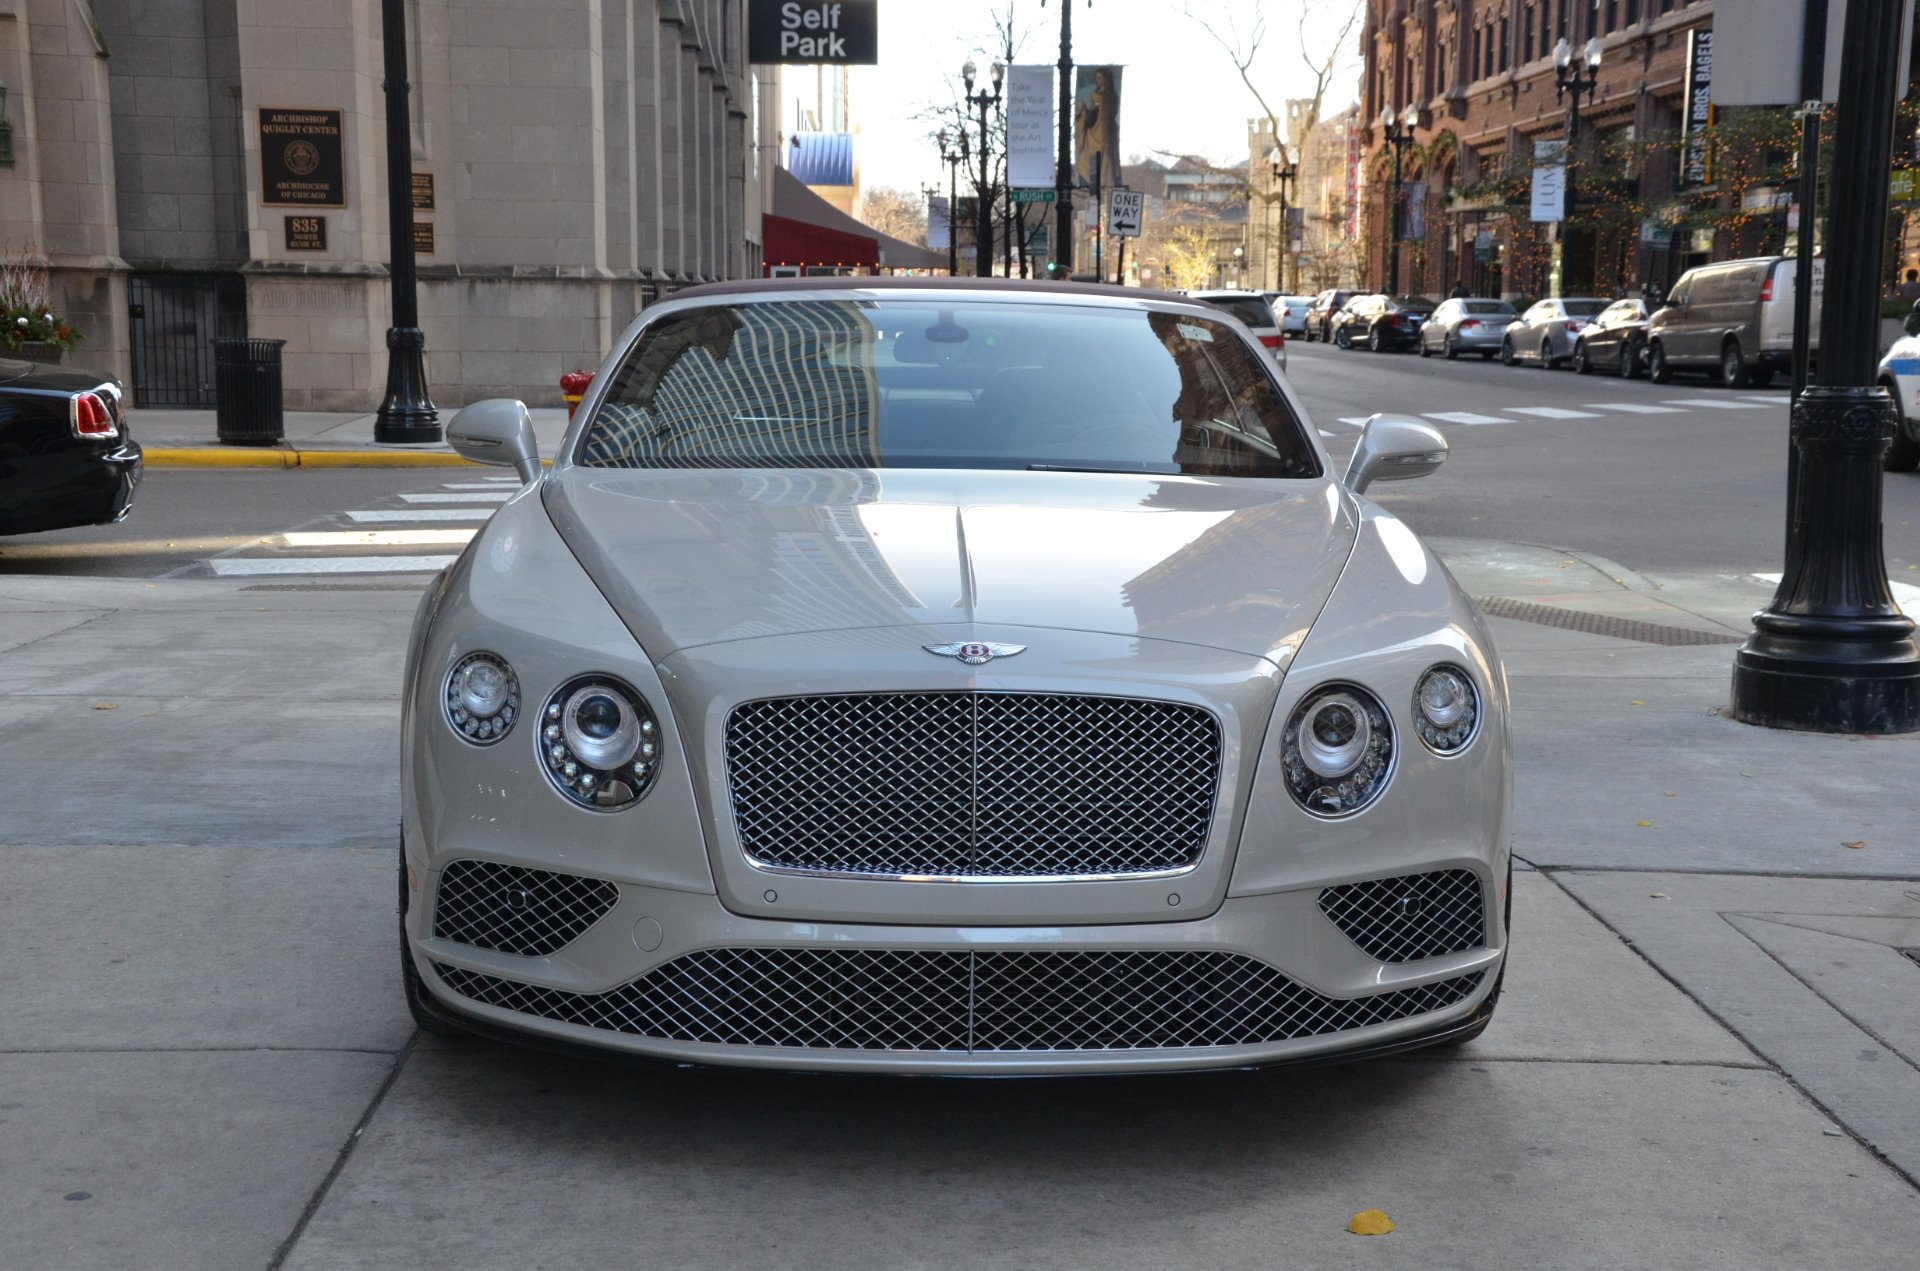 2017 bentley continental gtc v8 s stock b850 for sale near chicago il il bentley dealer. Black Bedroom Furniture Sets. Home Design Ideas